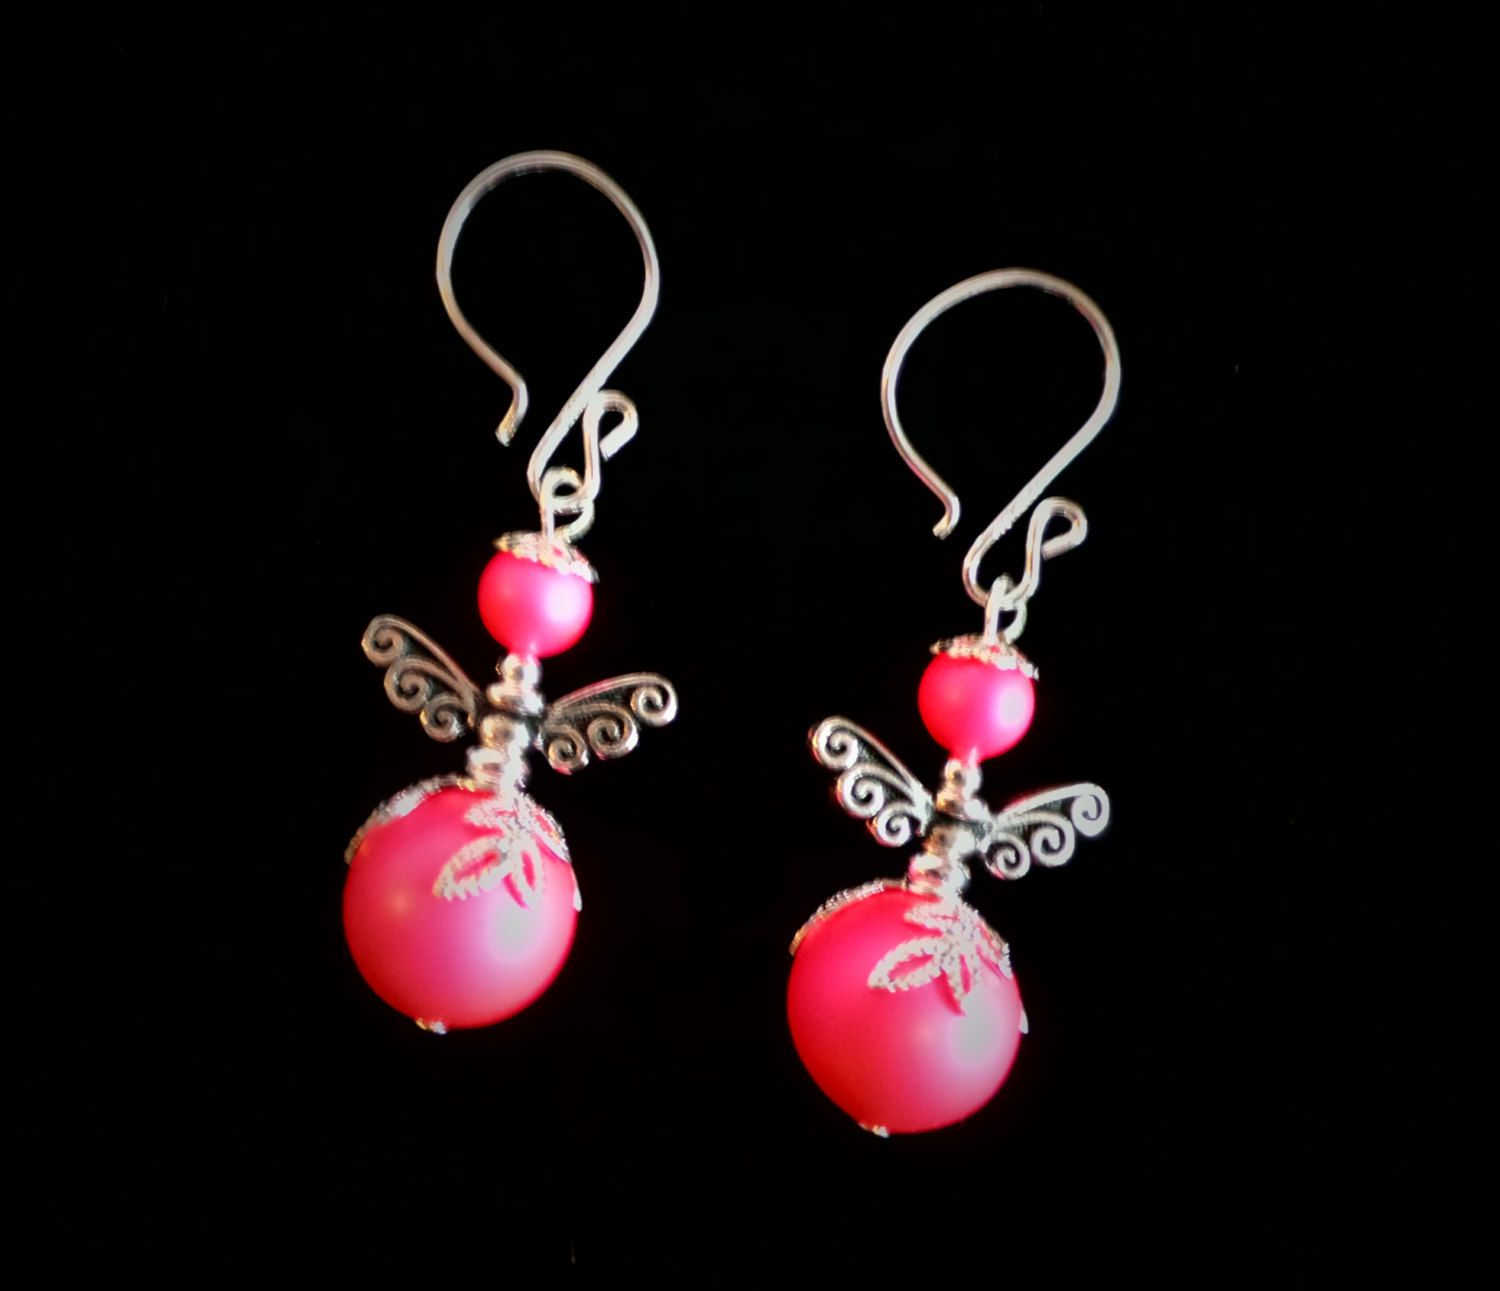 Fairy Earrings. Handcrafted with Swarovski crystal pearls. by VeteransGoCrafty on Etsy